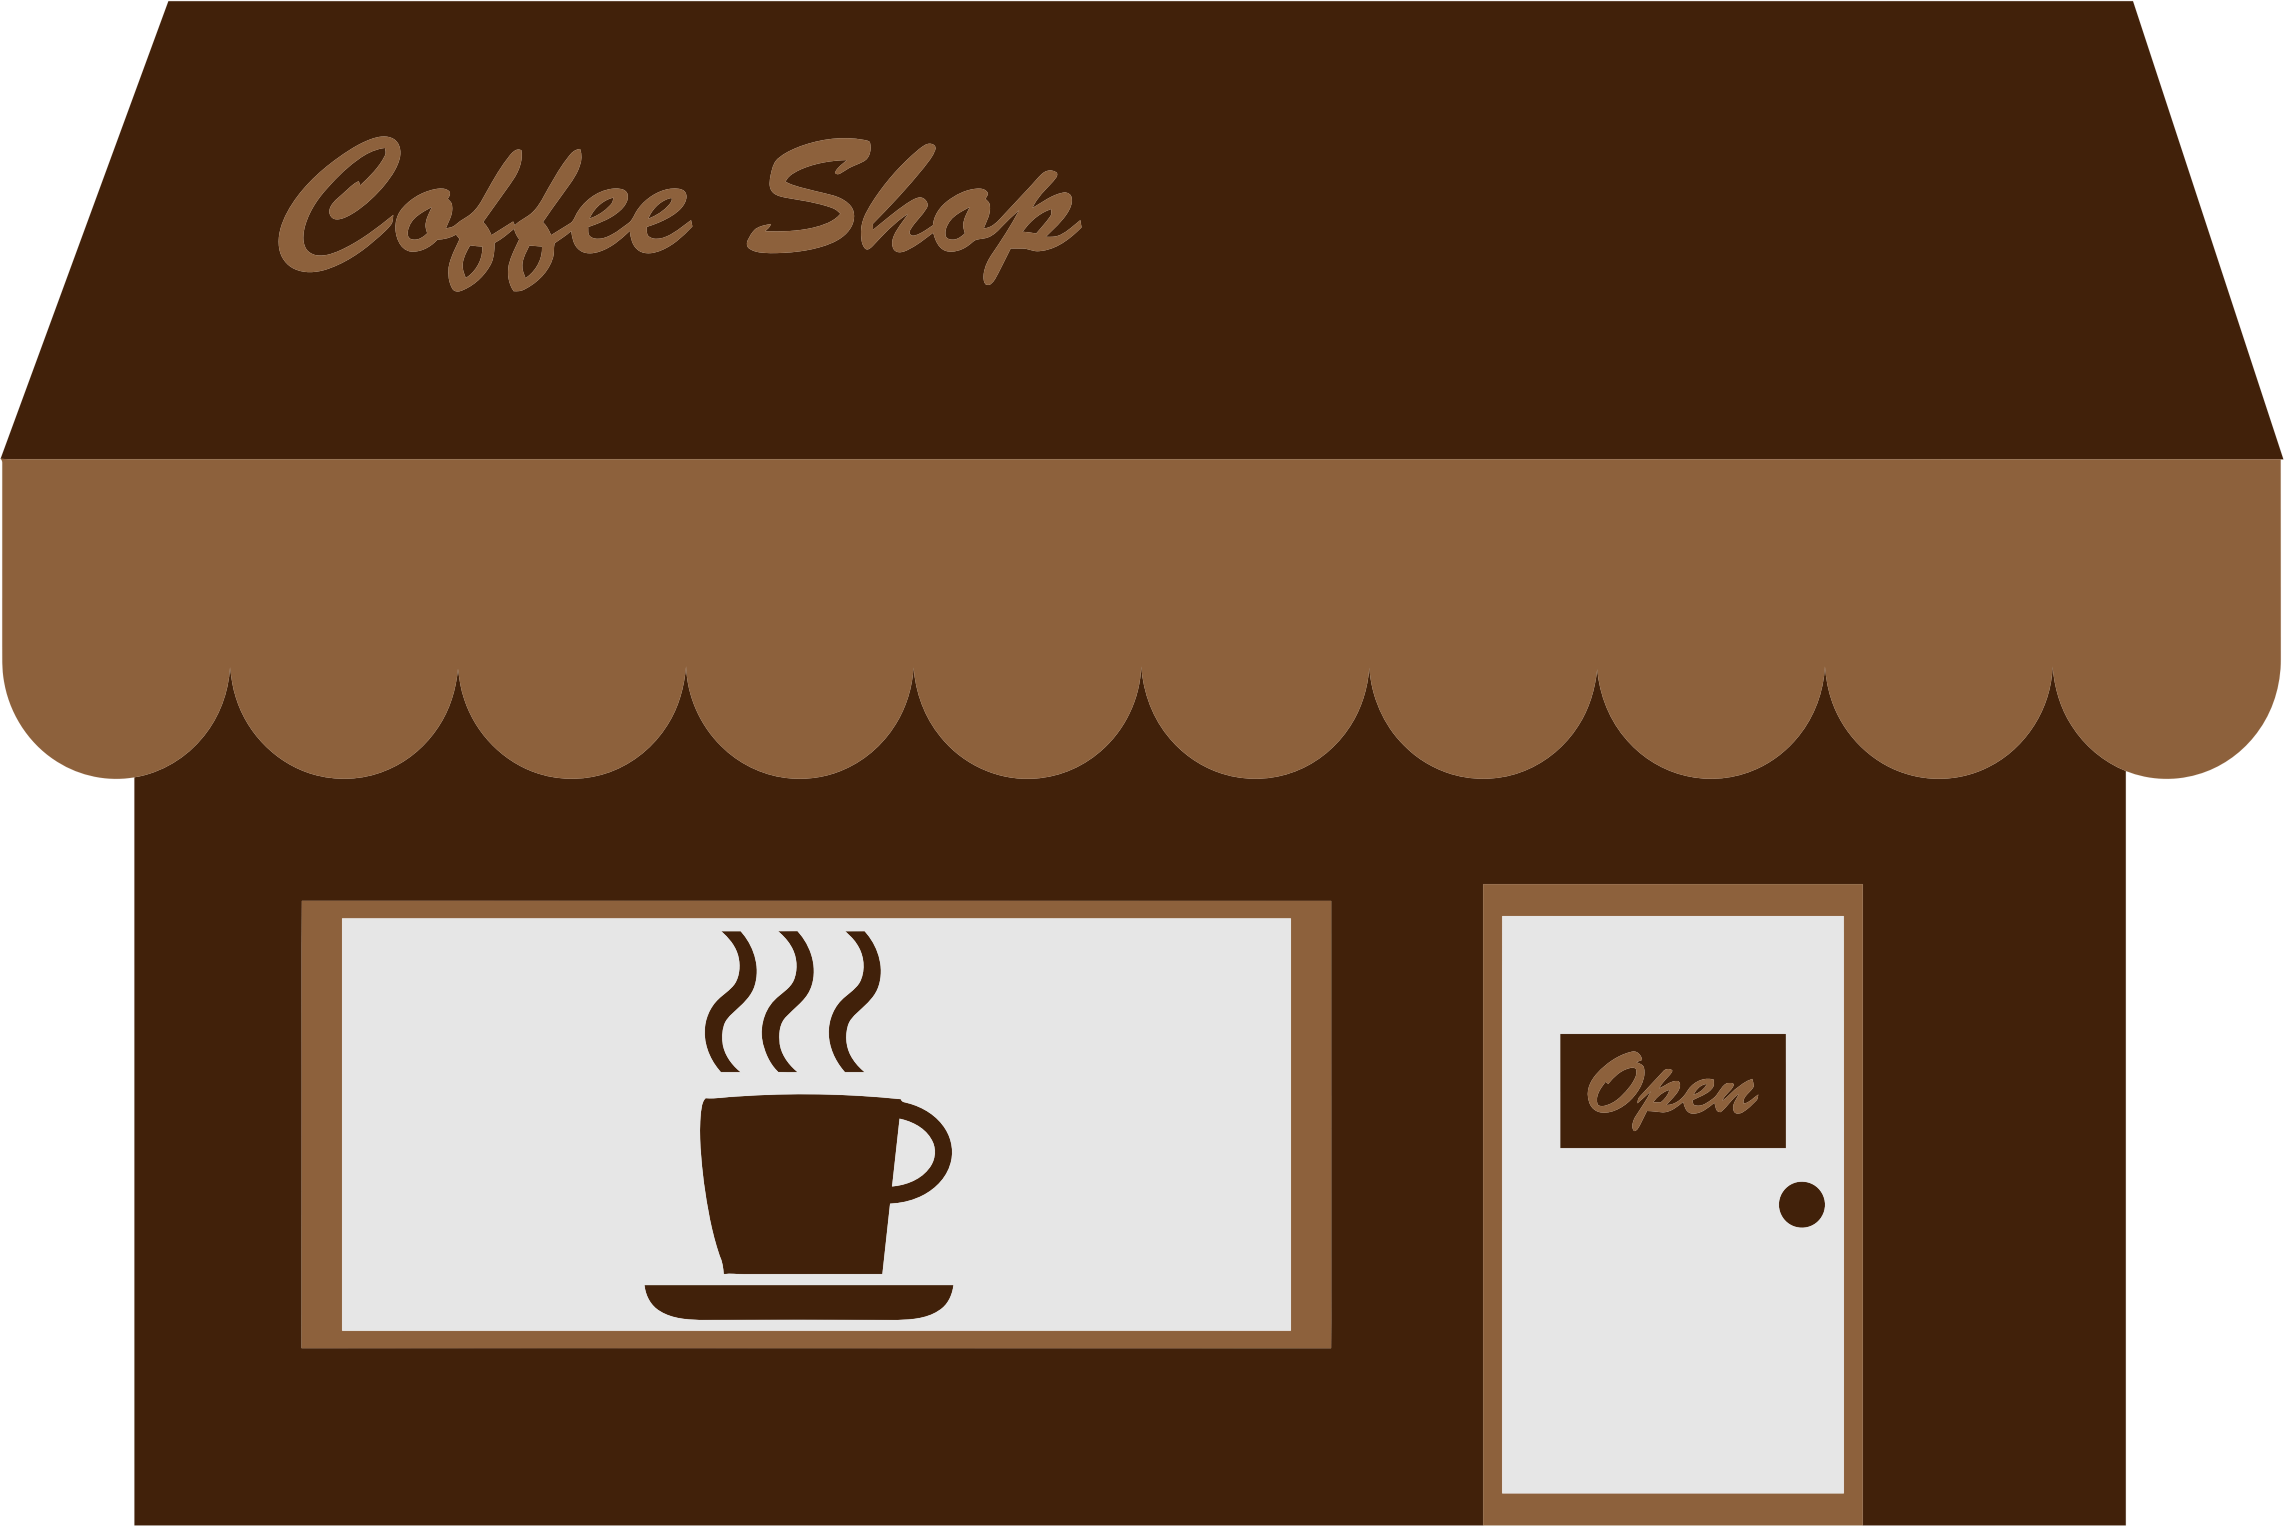 How To Open A Cafe Shop